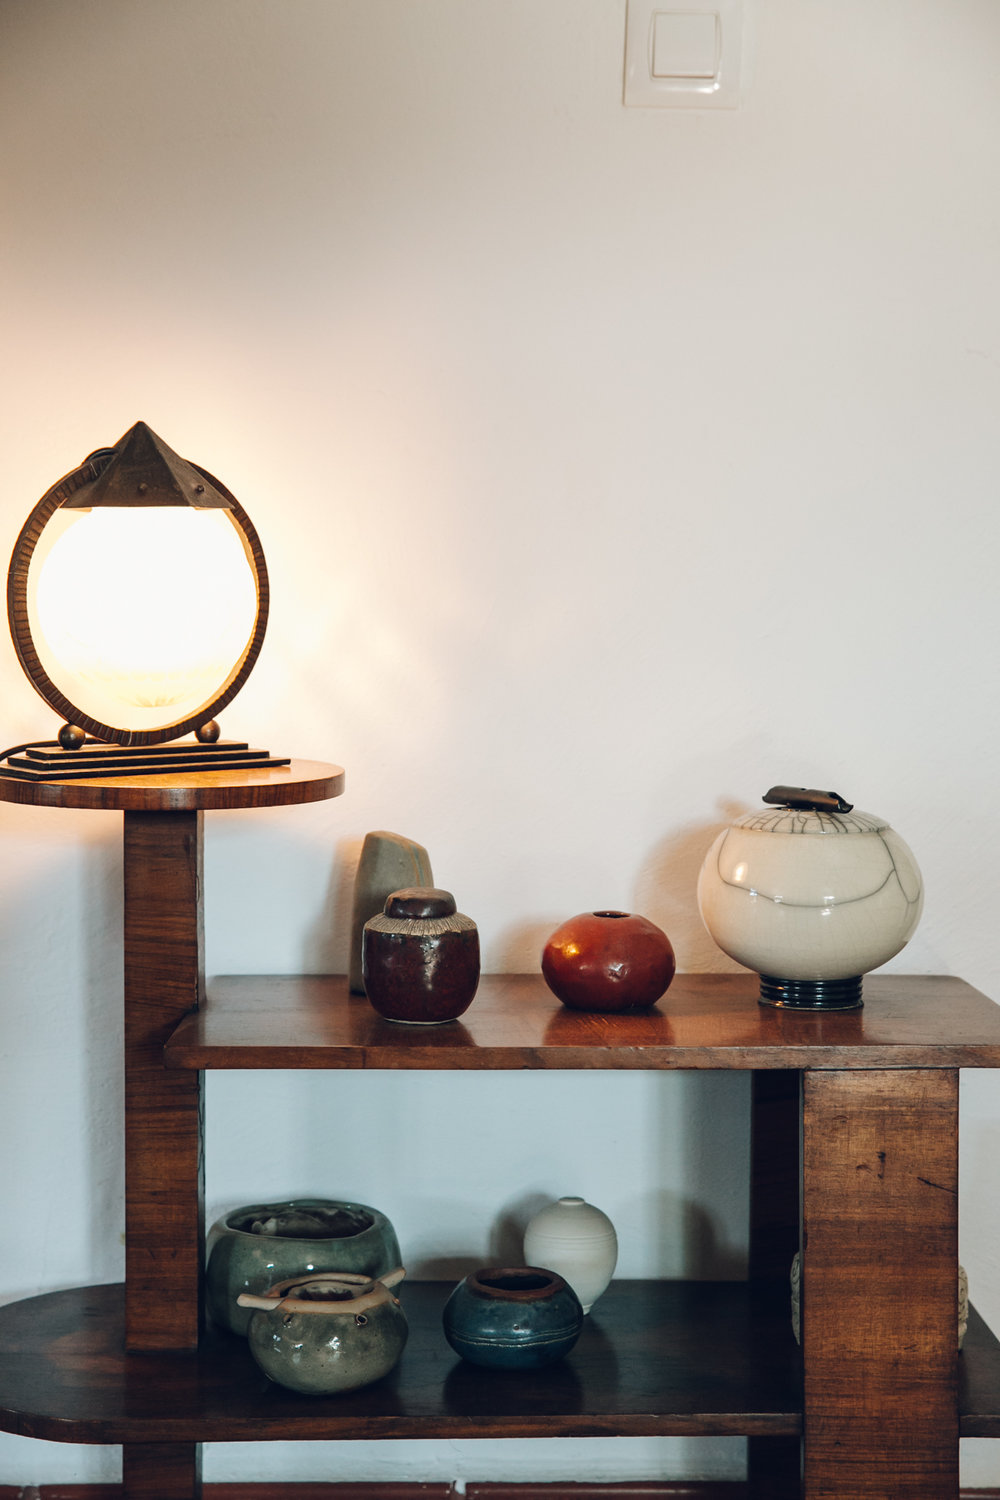 Ceramic display in our Spanish casa.